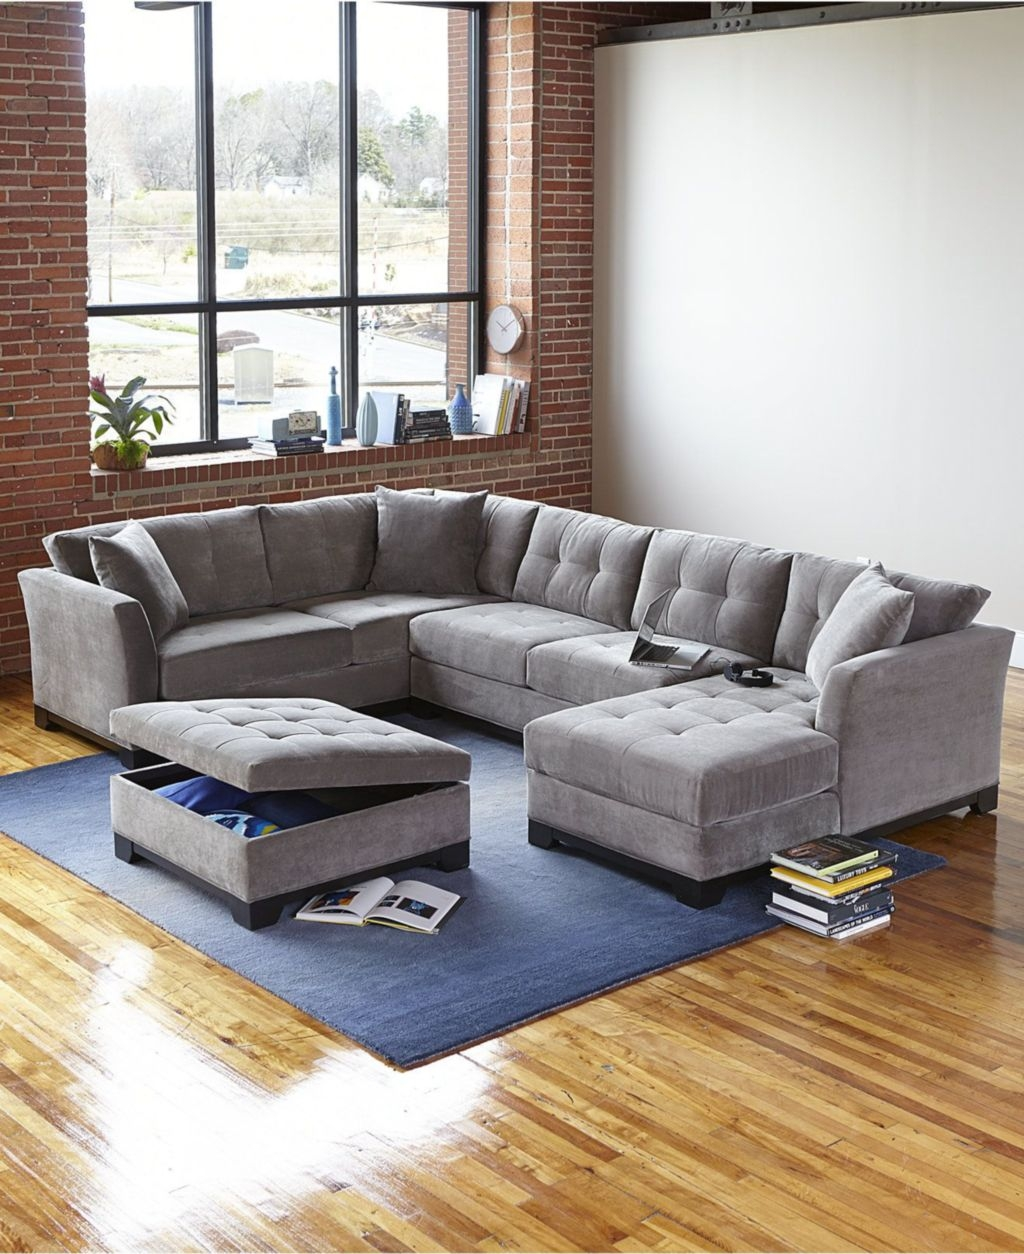 Comfortable Sutton U Shaped Sectional Ideas For Living Room22